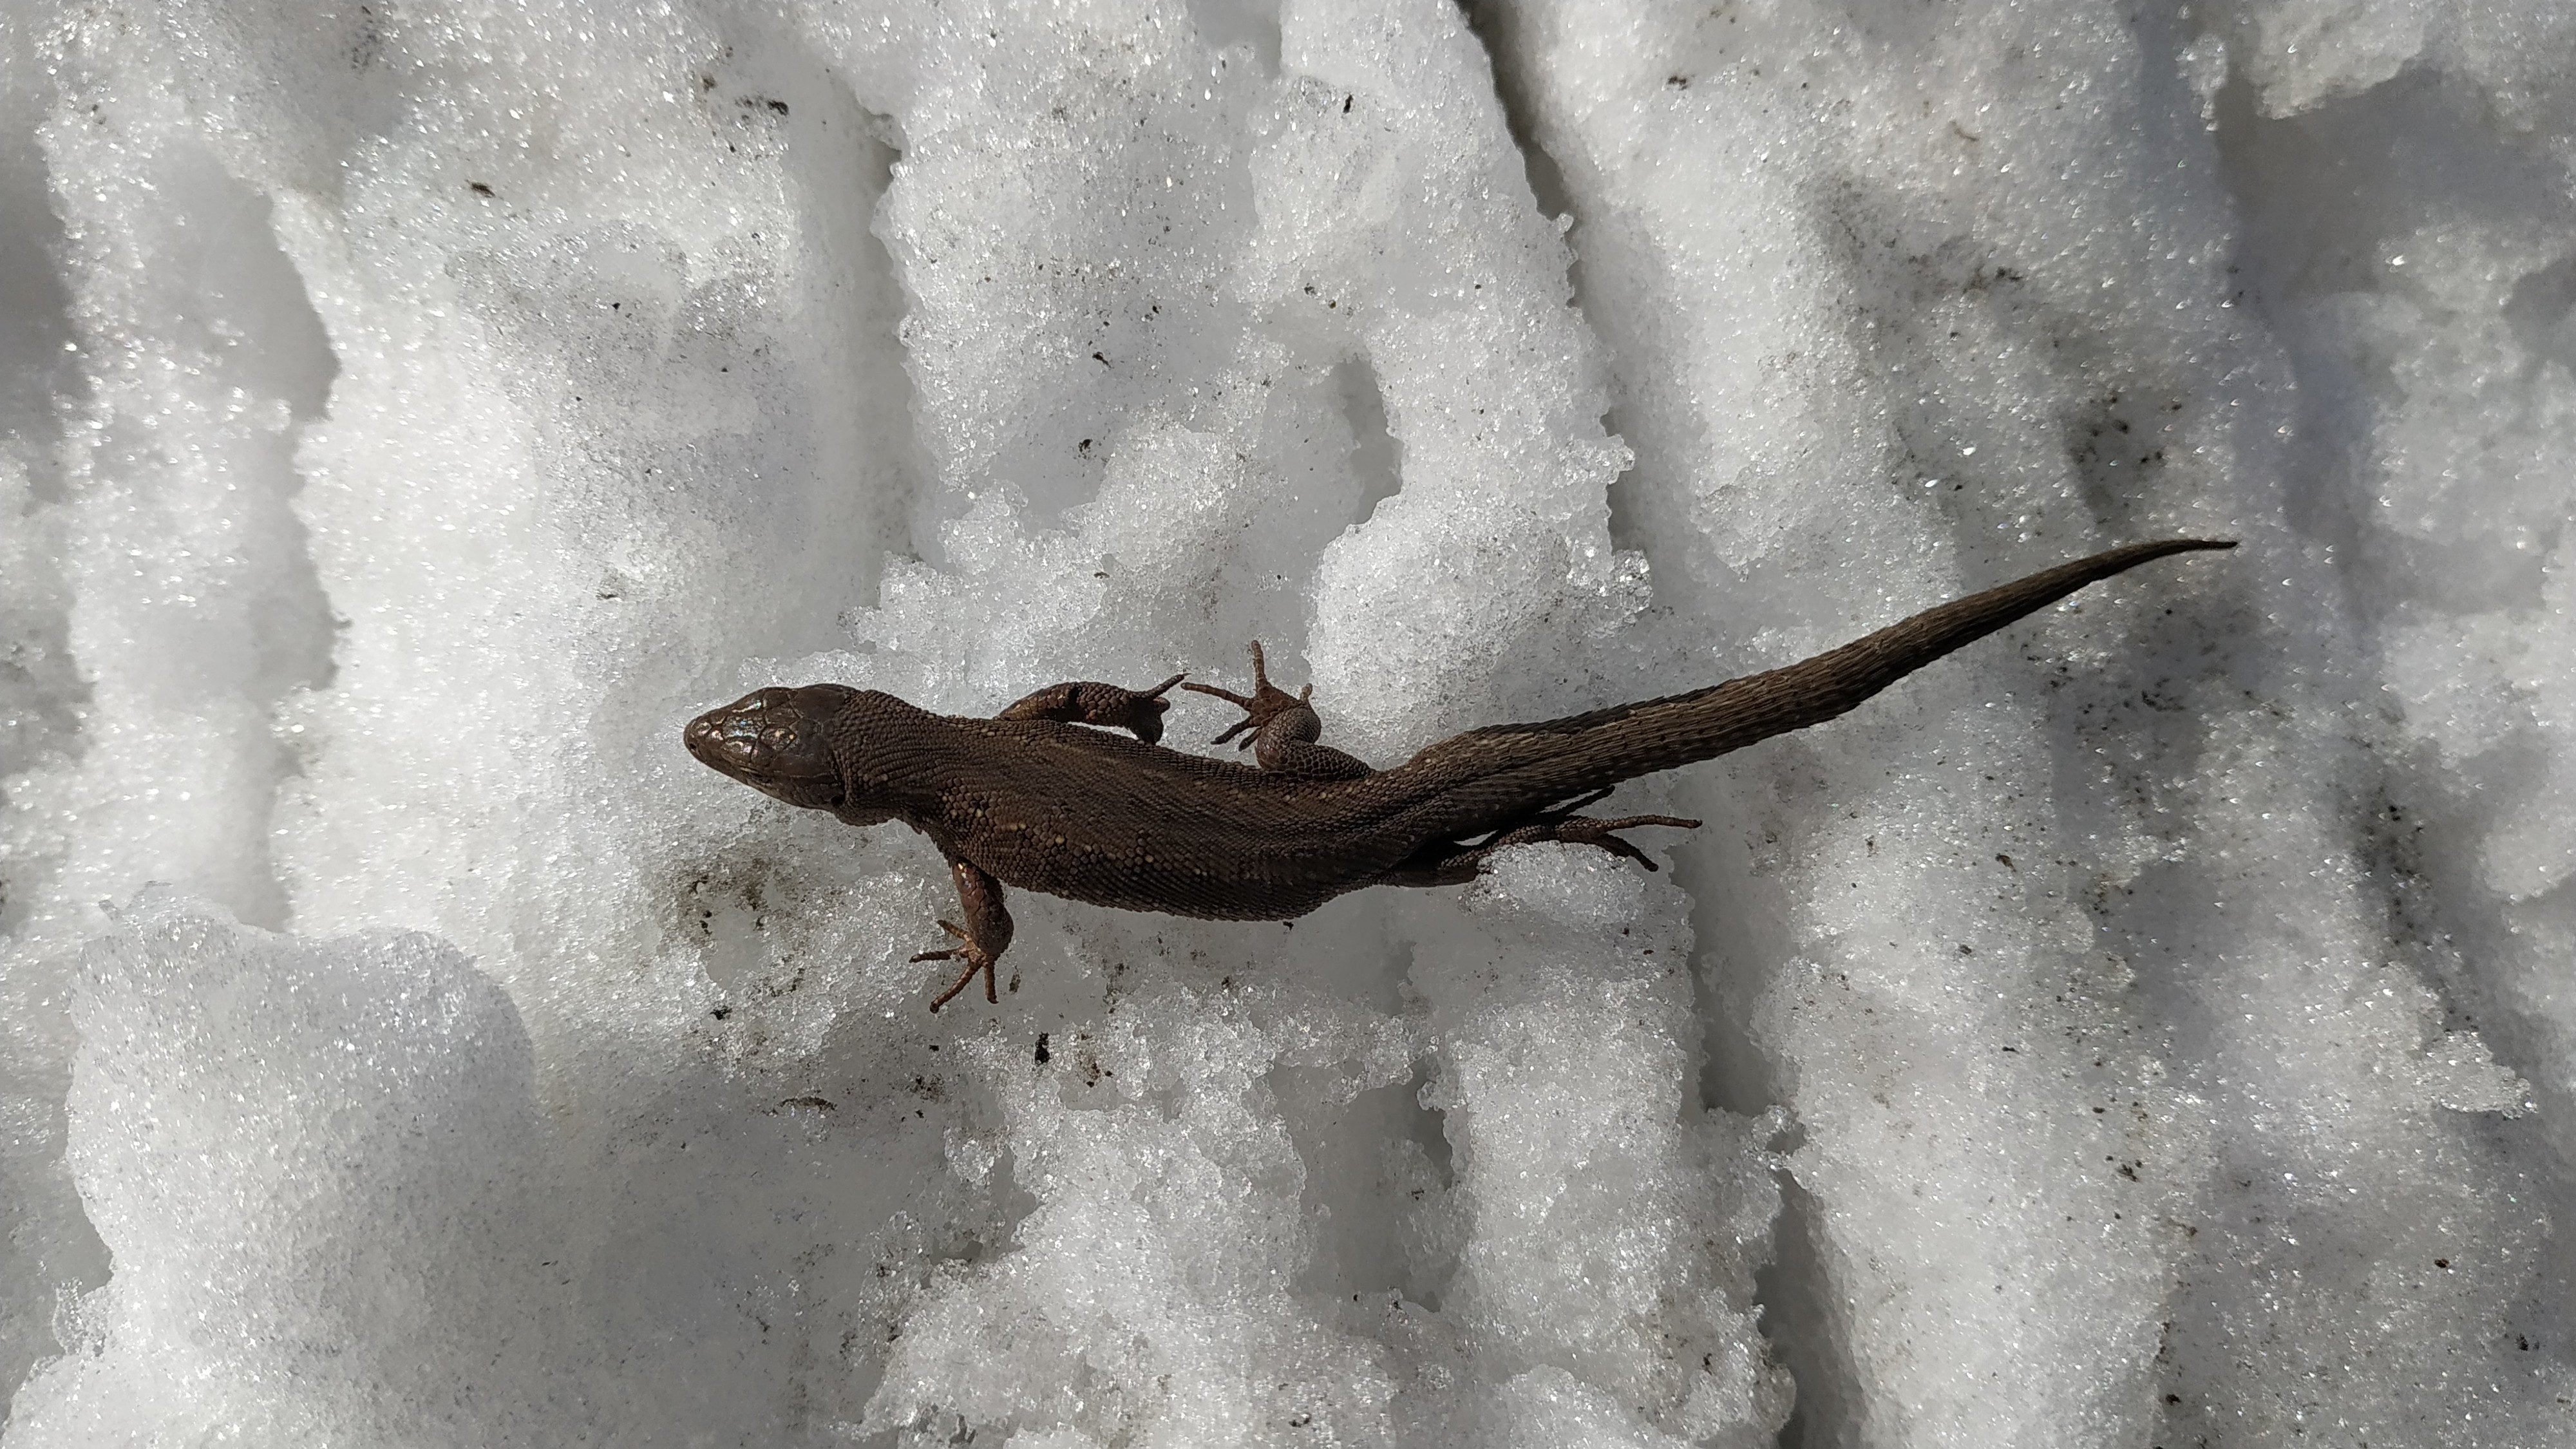 Lizard after wintering get out to warm up